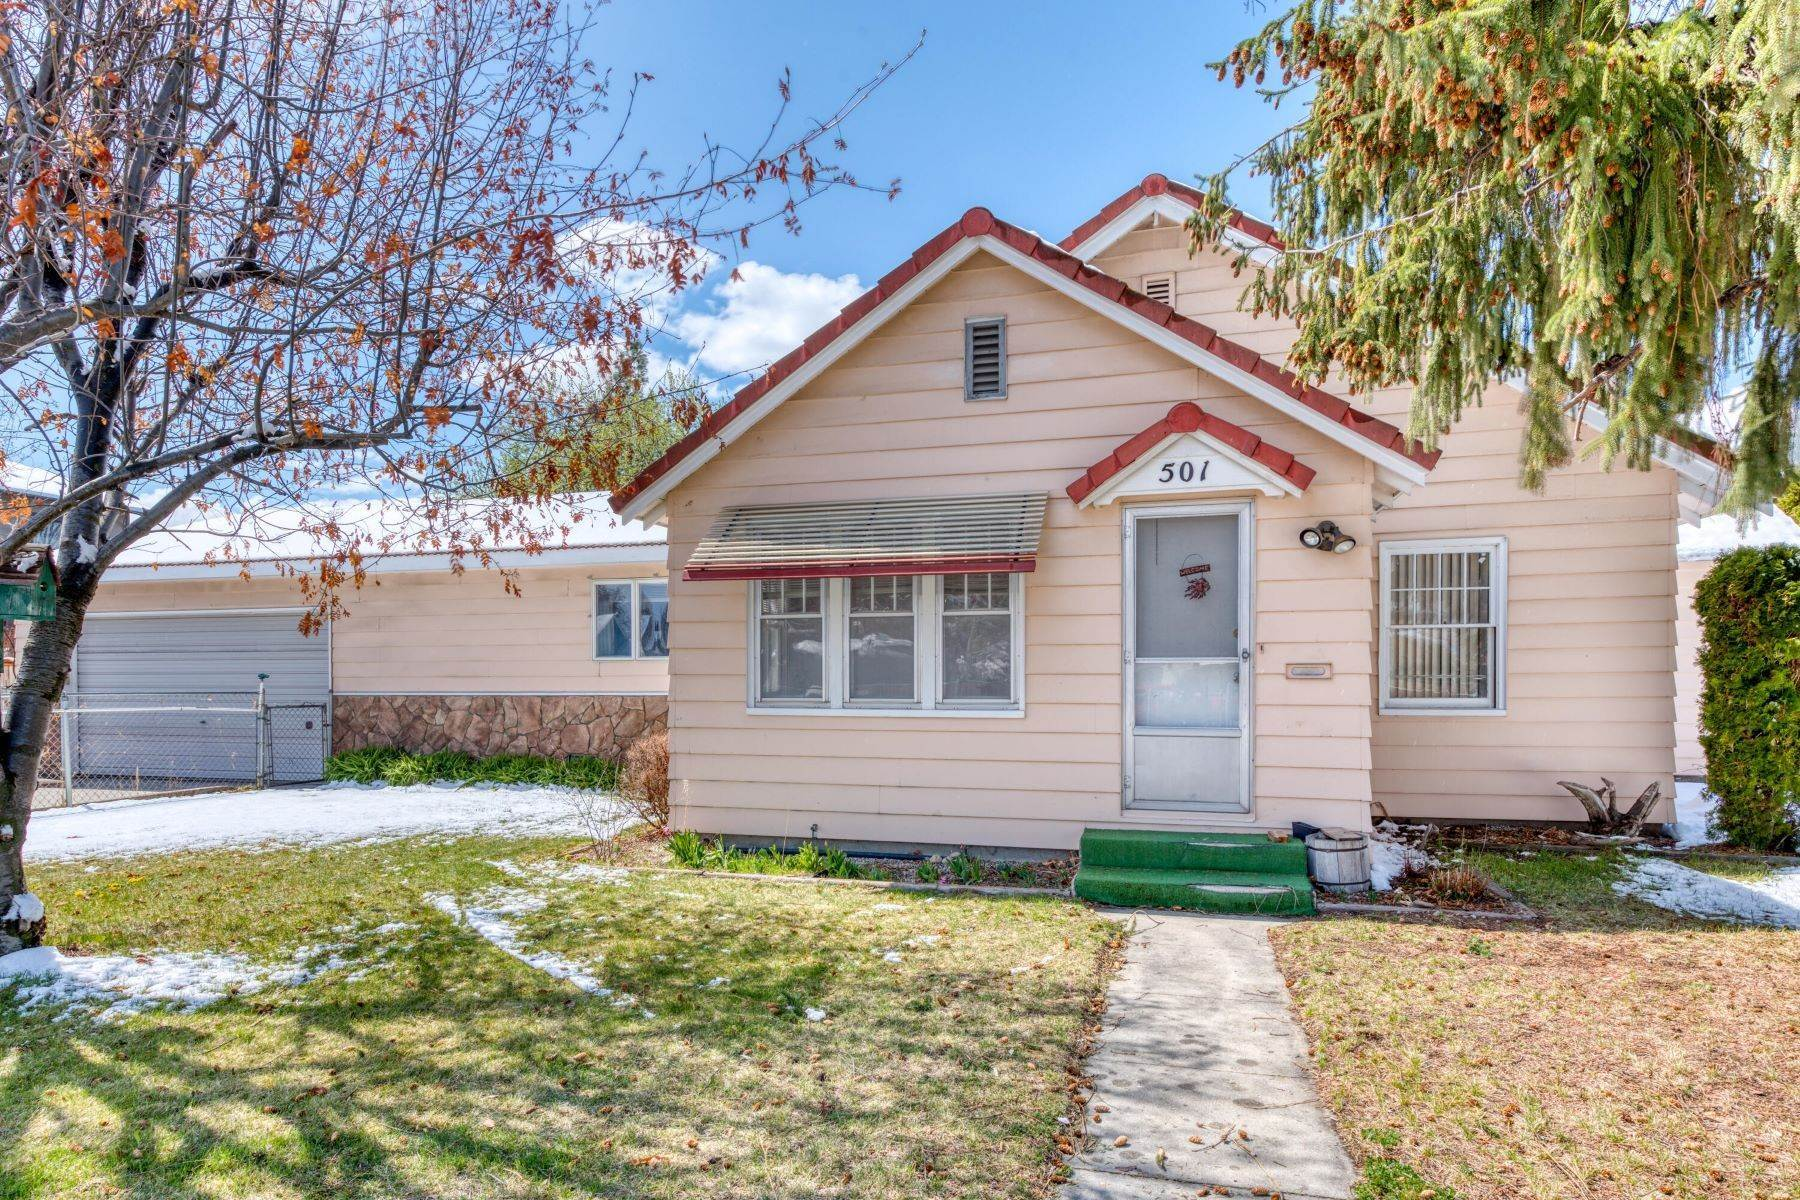 Single Family Homes for Sale at Great Location in Hamilton 501 South 8th Street Hamilton, Montana 59840 United States